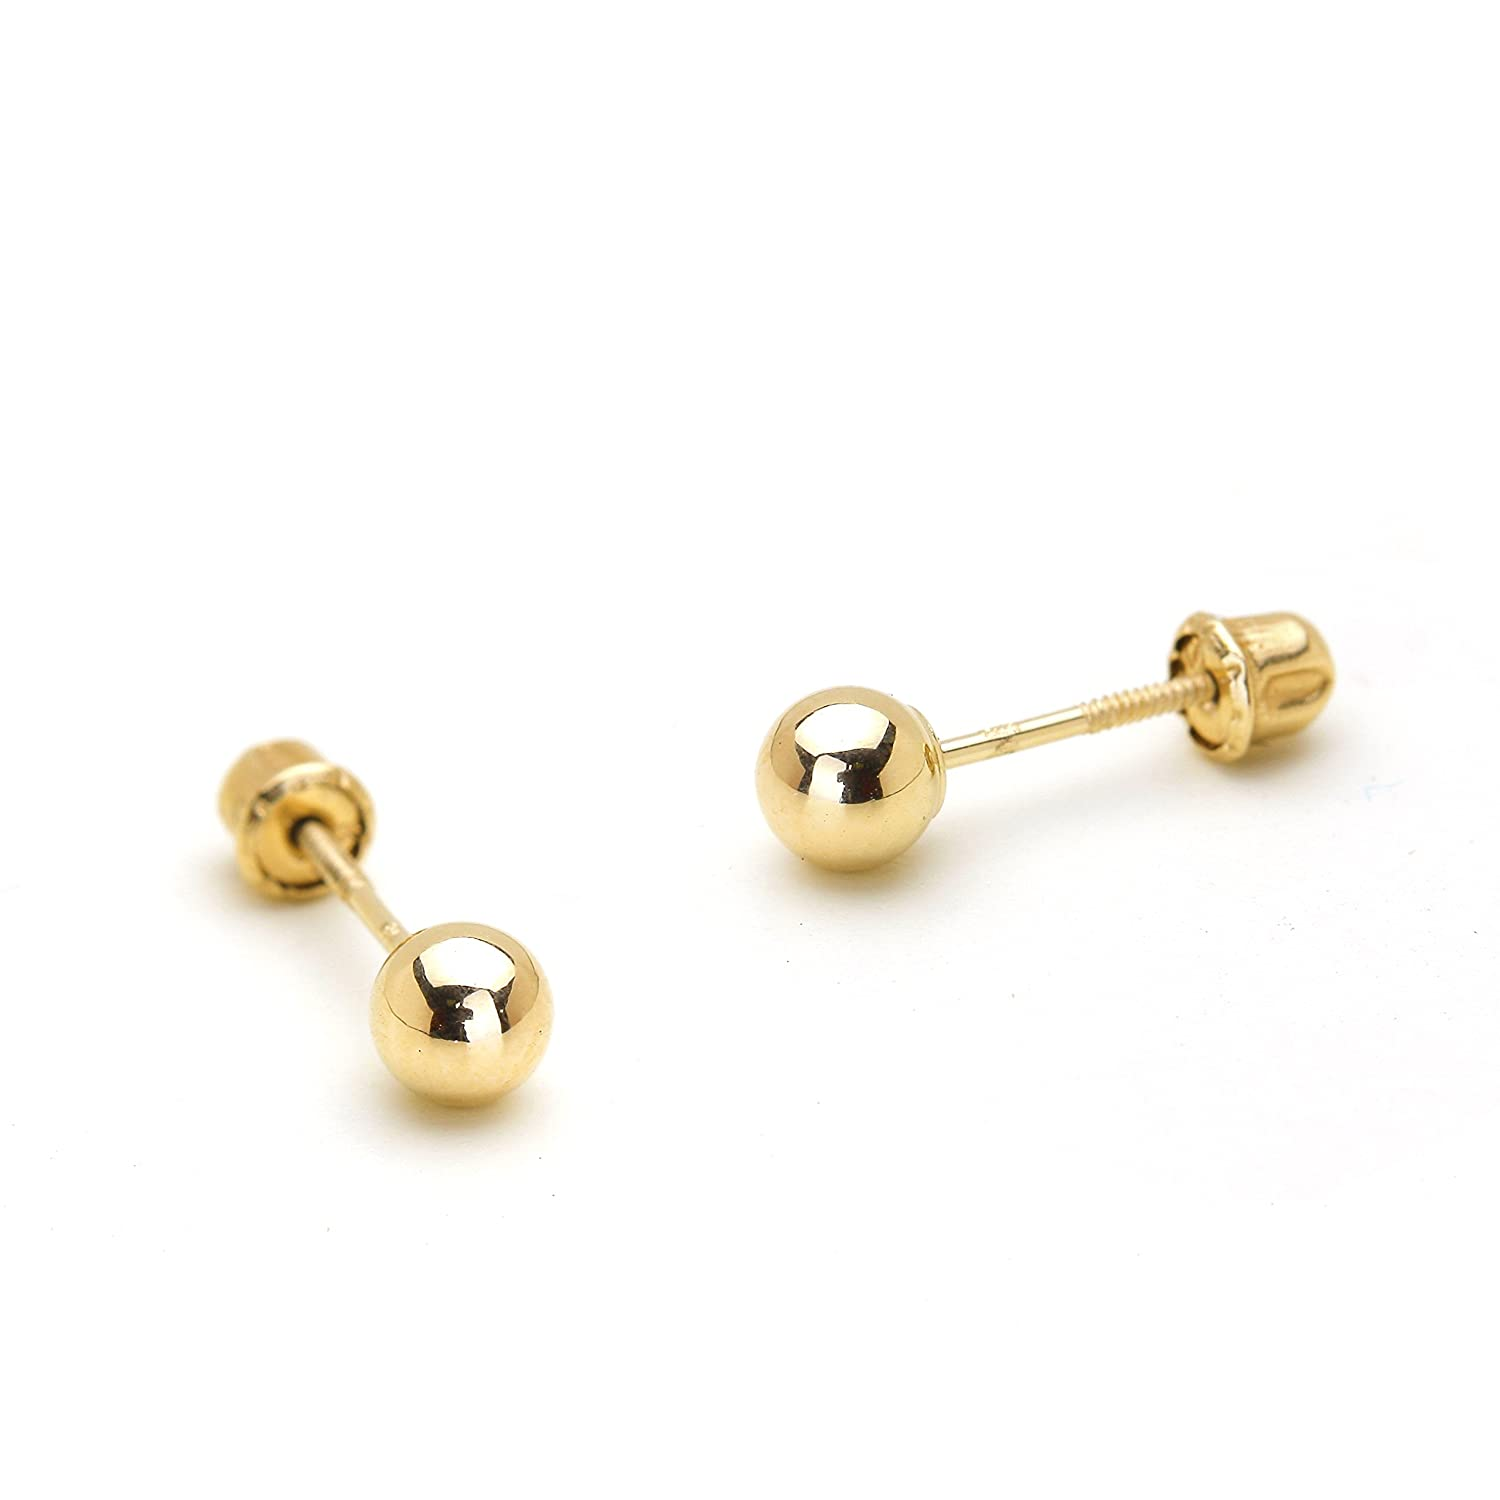 gold dazzle inc first picture regal jewels of earring stud baby